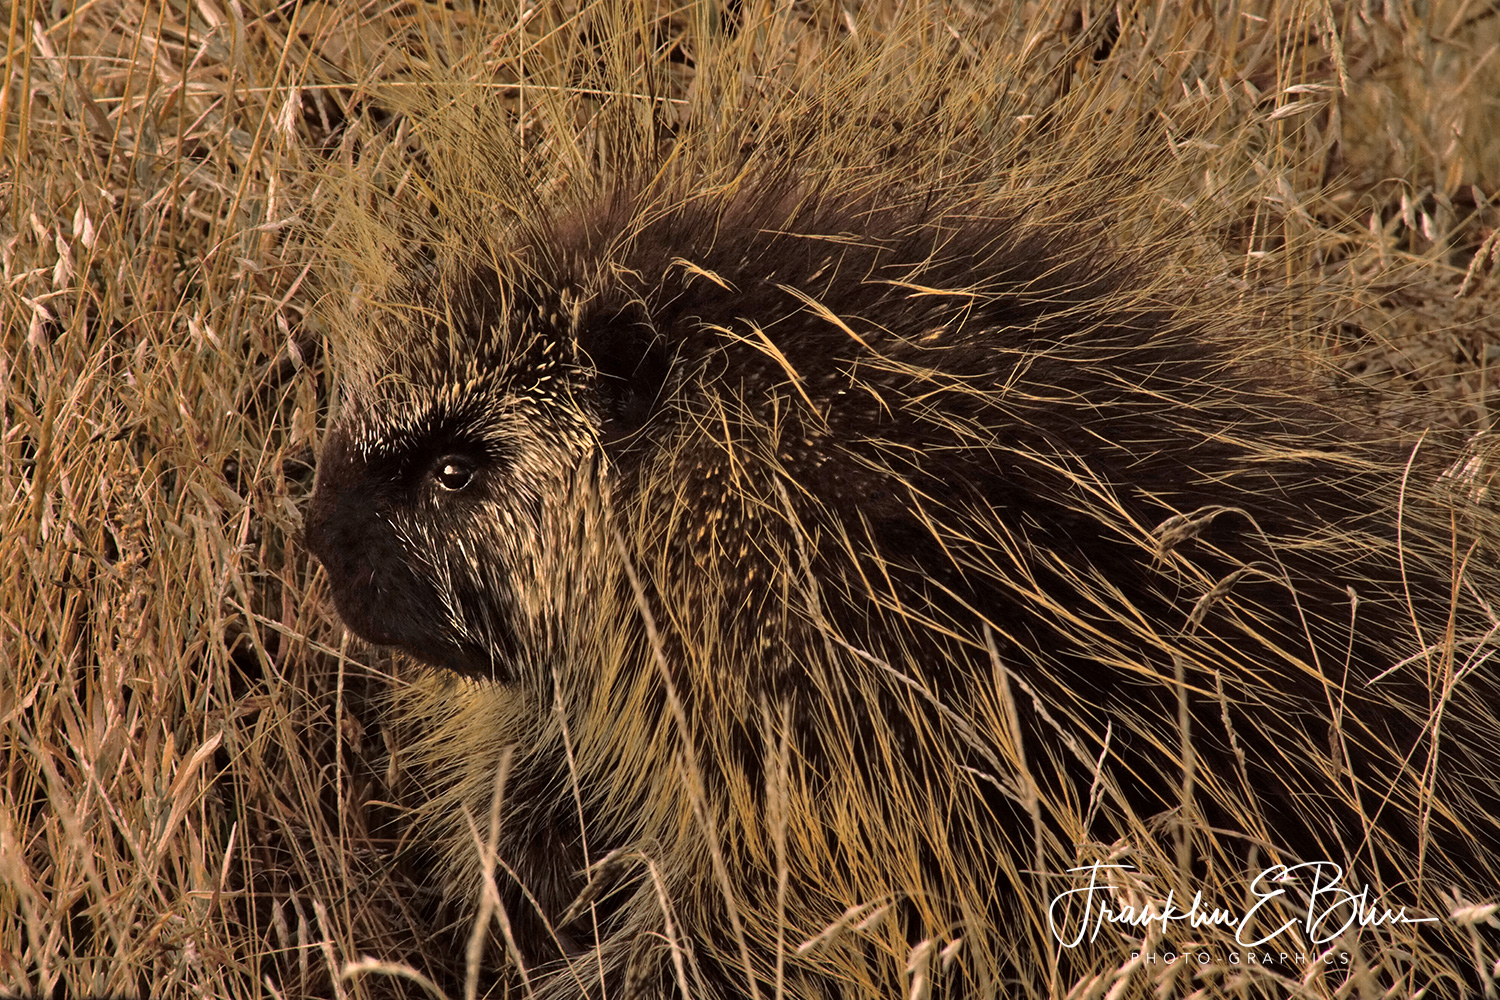 Porcupine in the Grass